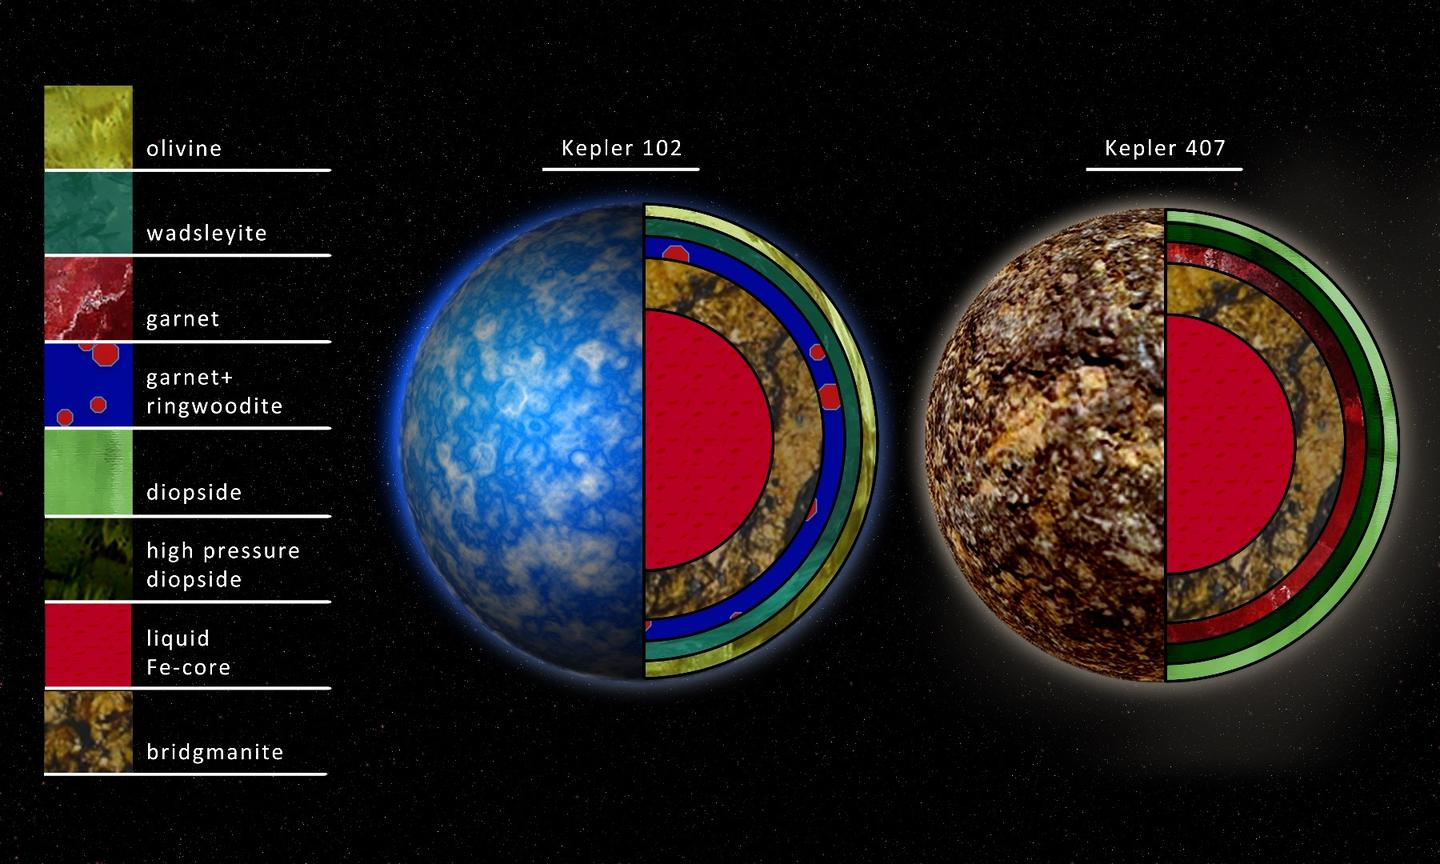 Artist's rendition of interior compositions of planets around the stars Kepler 102 and Kepler 407